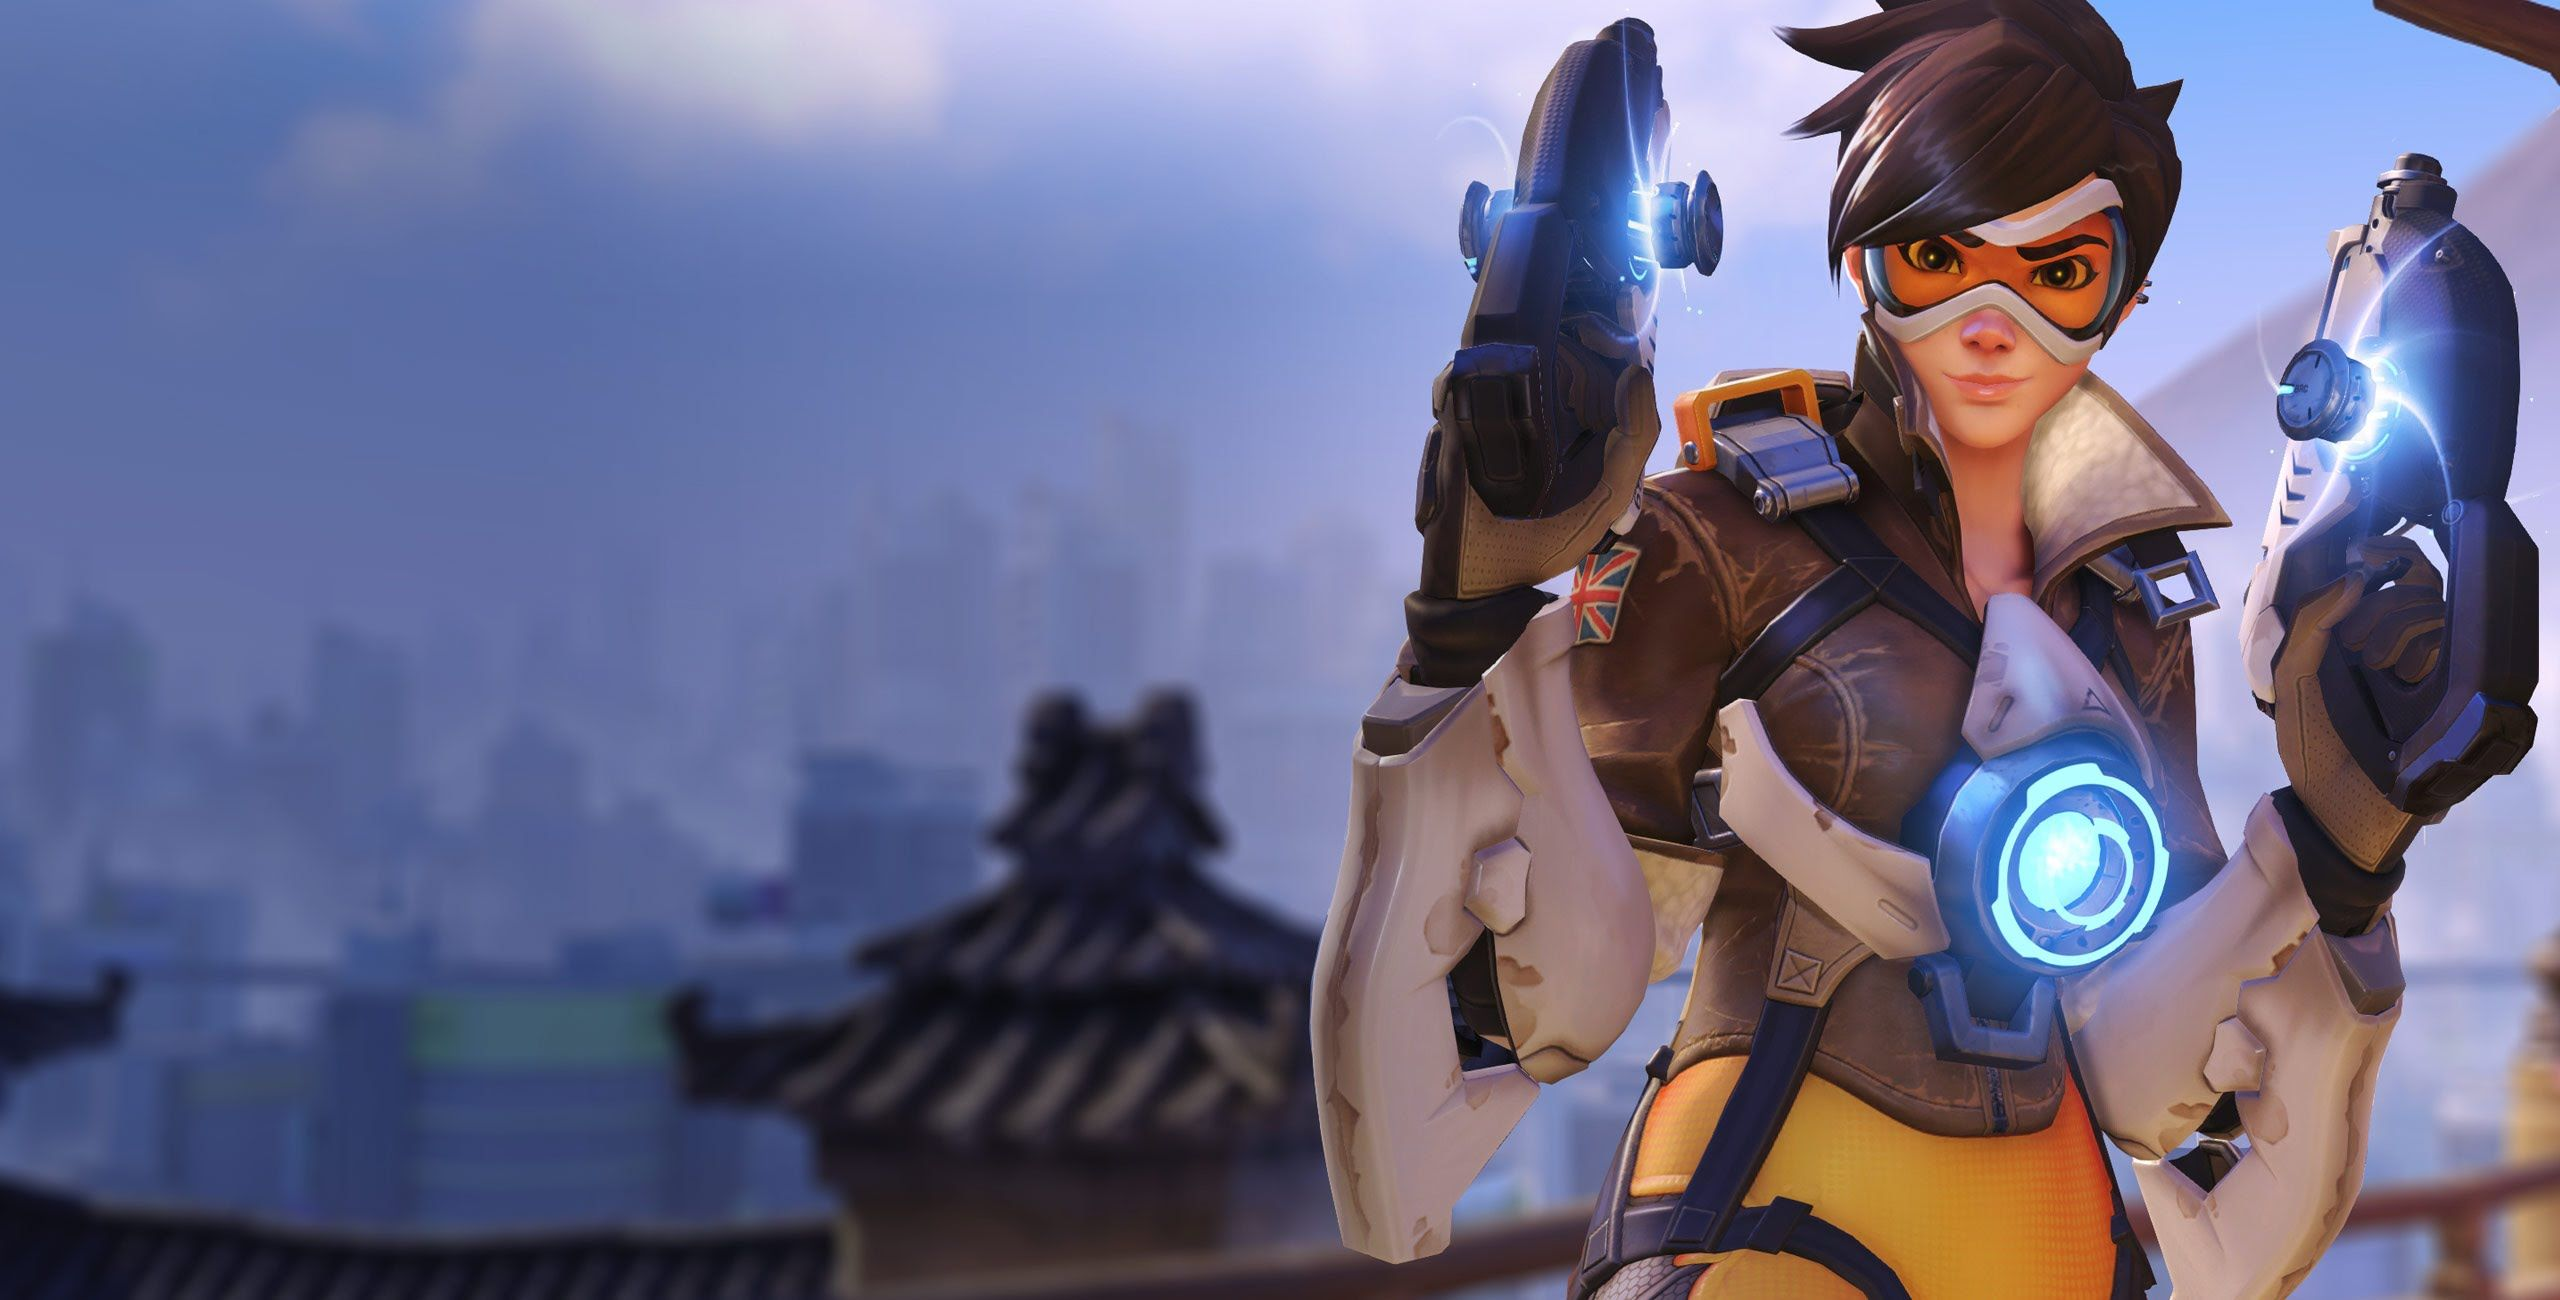 Overwatch: Tracer Cosplay Hair and Makeup Tutorial #CoolStuffGeekery # cosplay #overwatch #tutorials